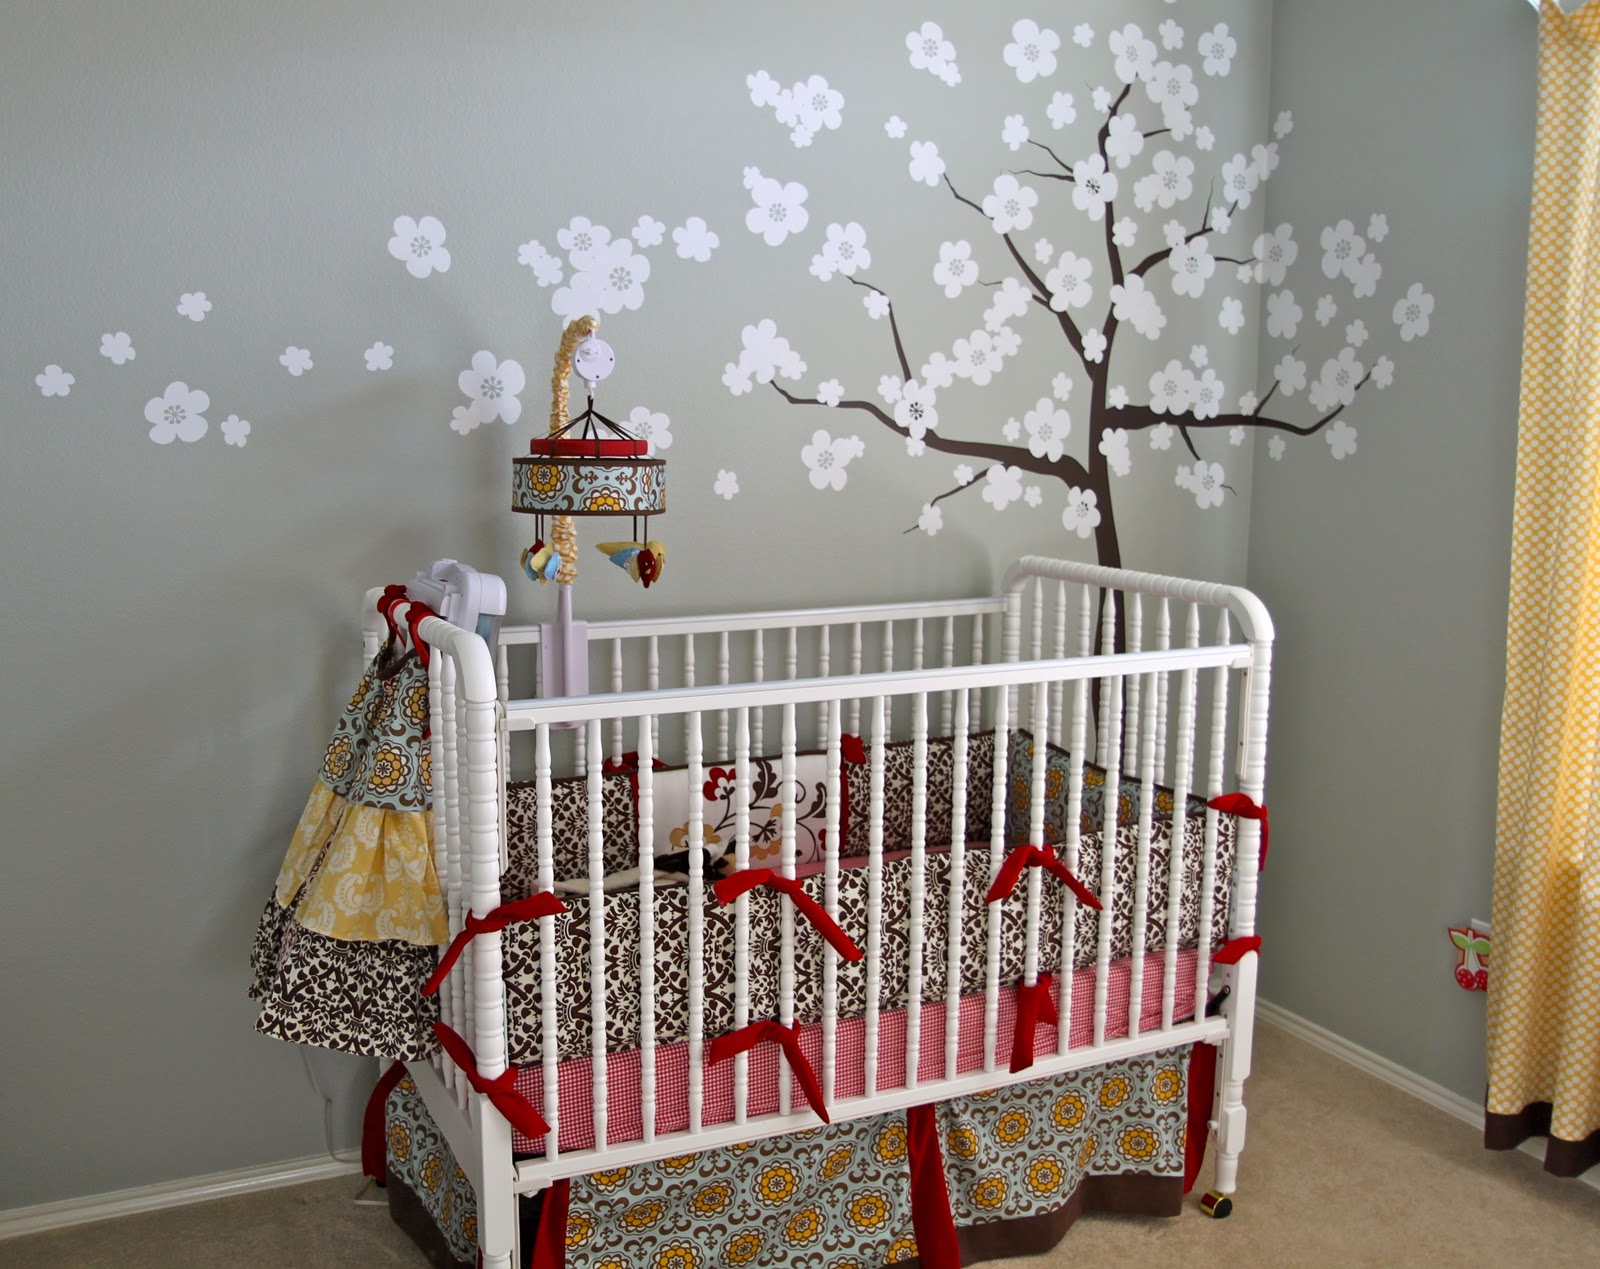 Baby nursery it 39 s quirky and so cute design dazzle for Baby rooms decoration ideas